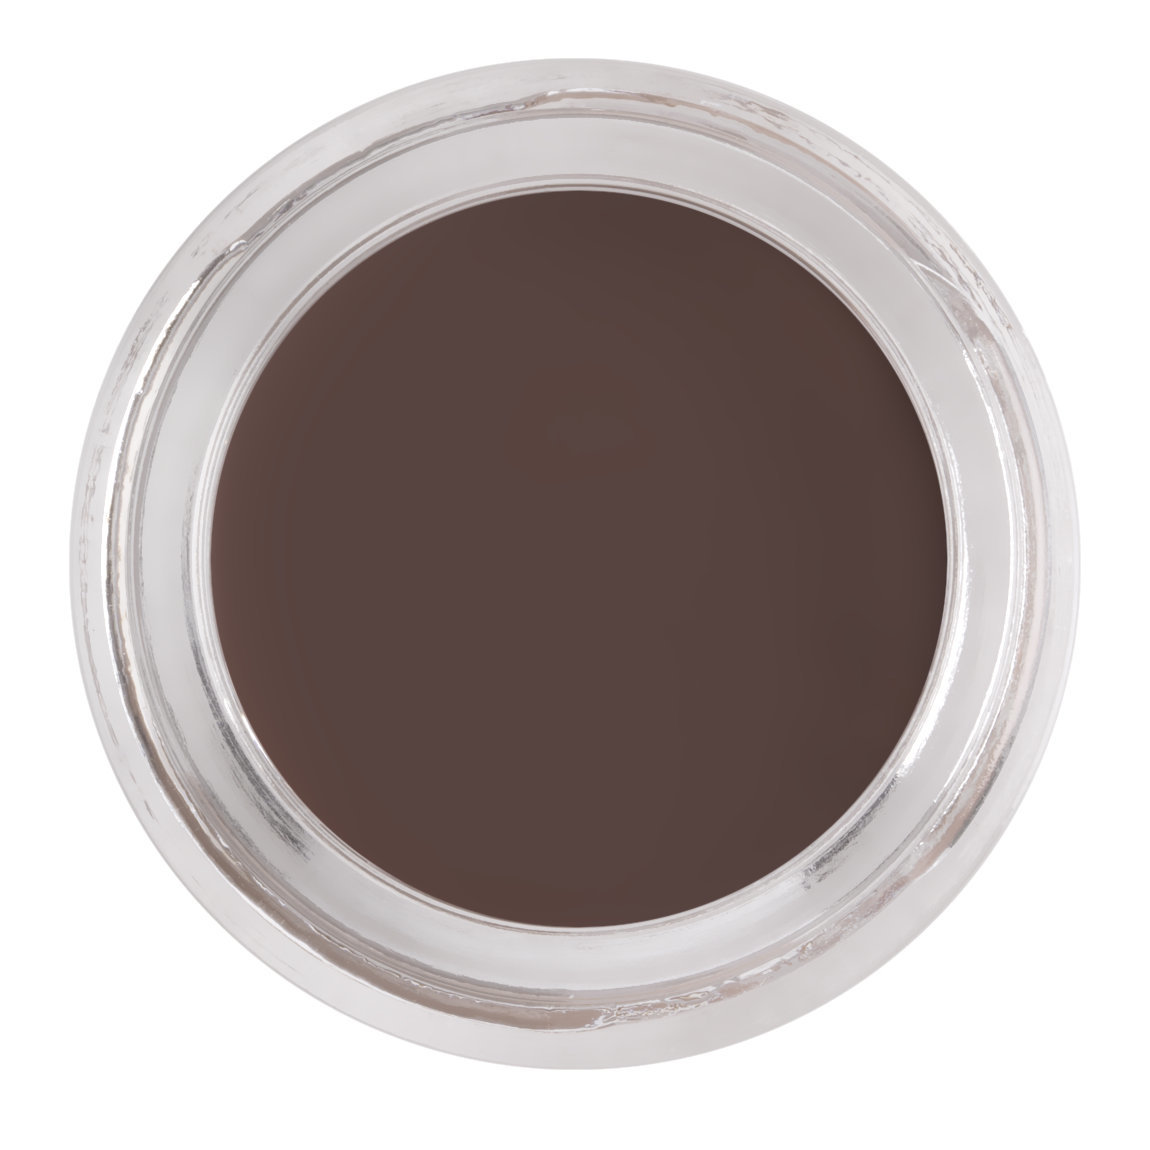 Anastasia Beverly Hills Dipbrow Pomade Dark Brown alternative view 1.